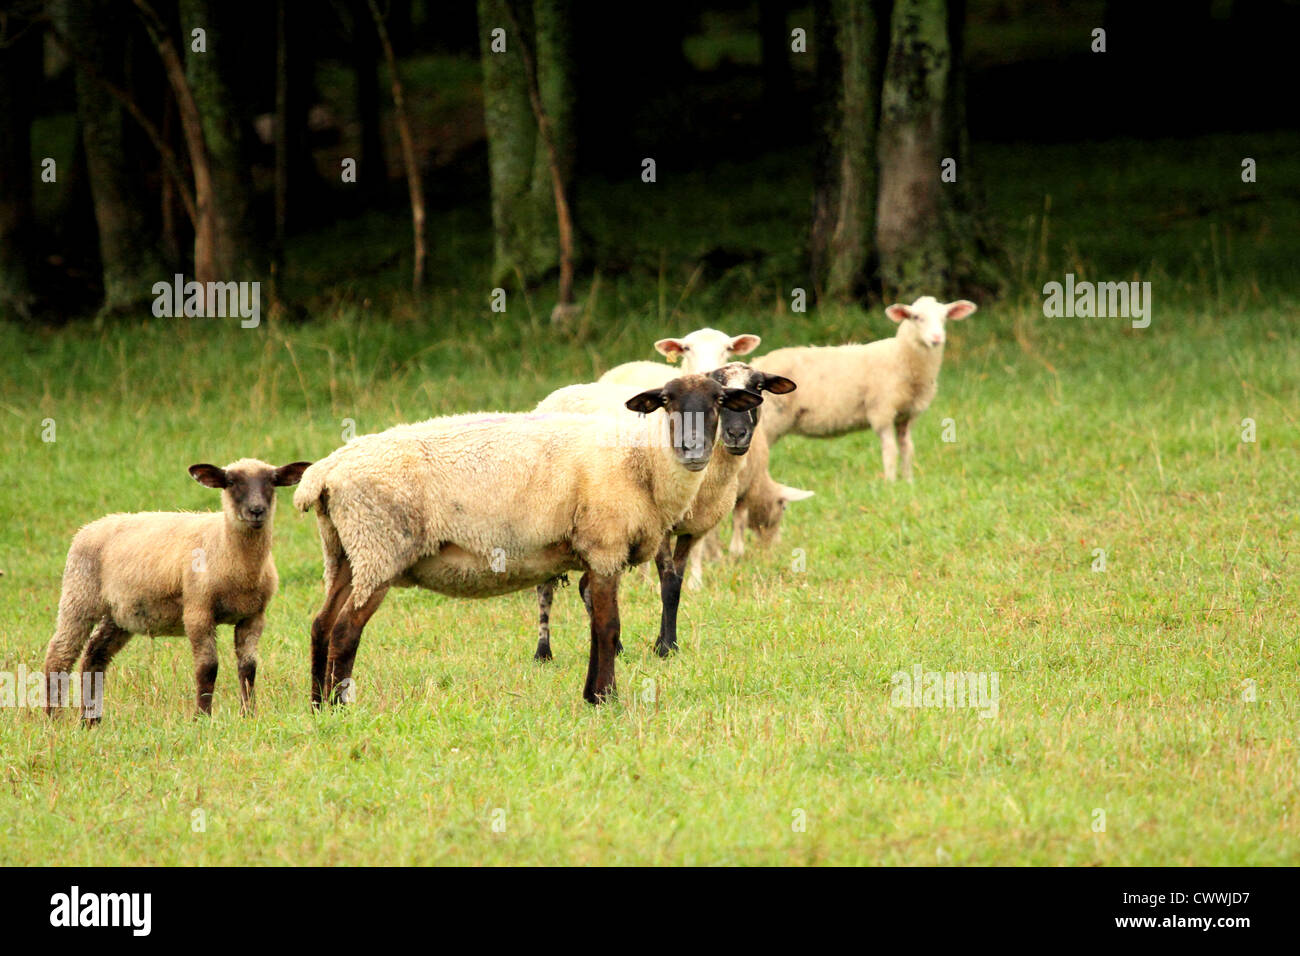 A group of sheep in a pasture. - Stock Image